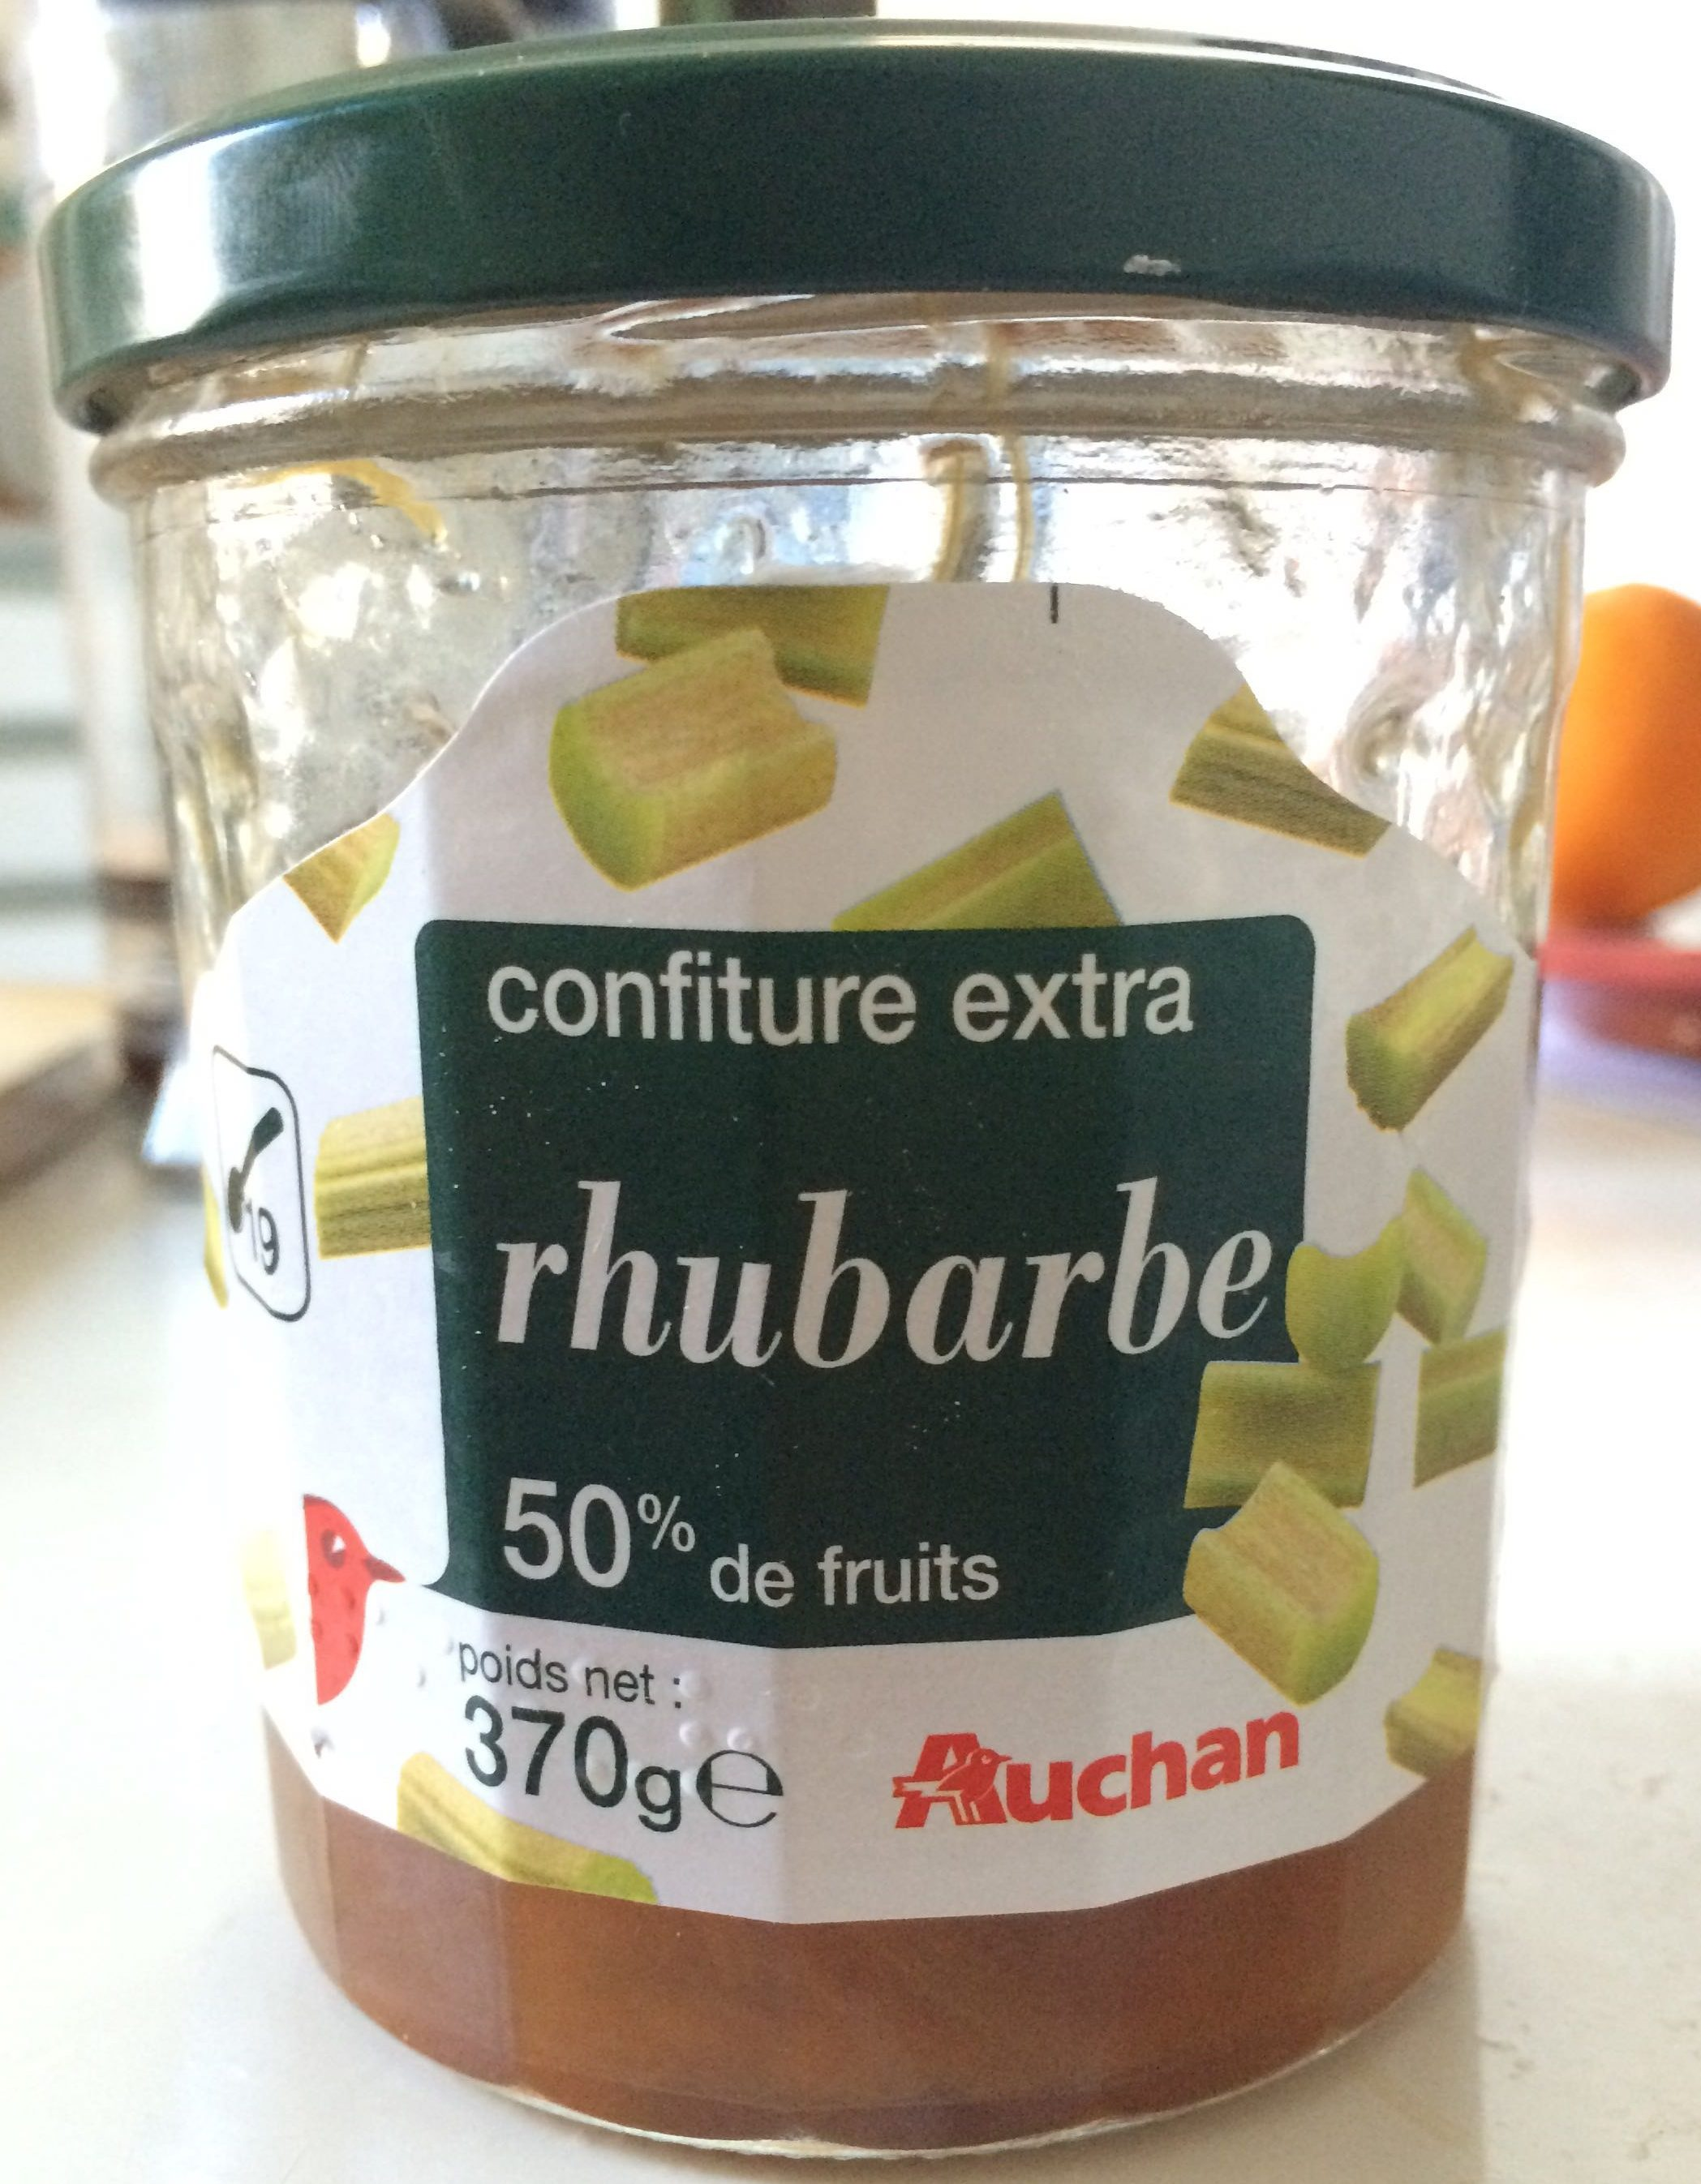 Confiture extra rhubarbe (50% de fruits) - Product